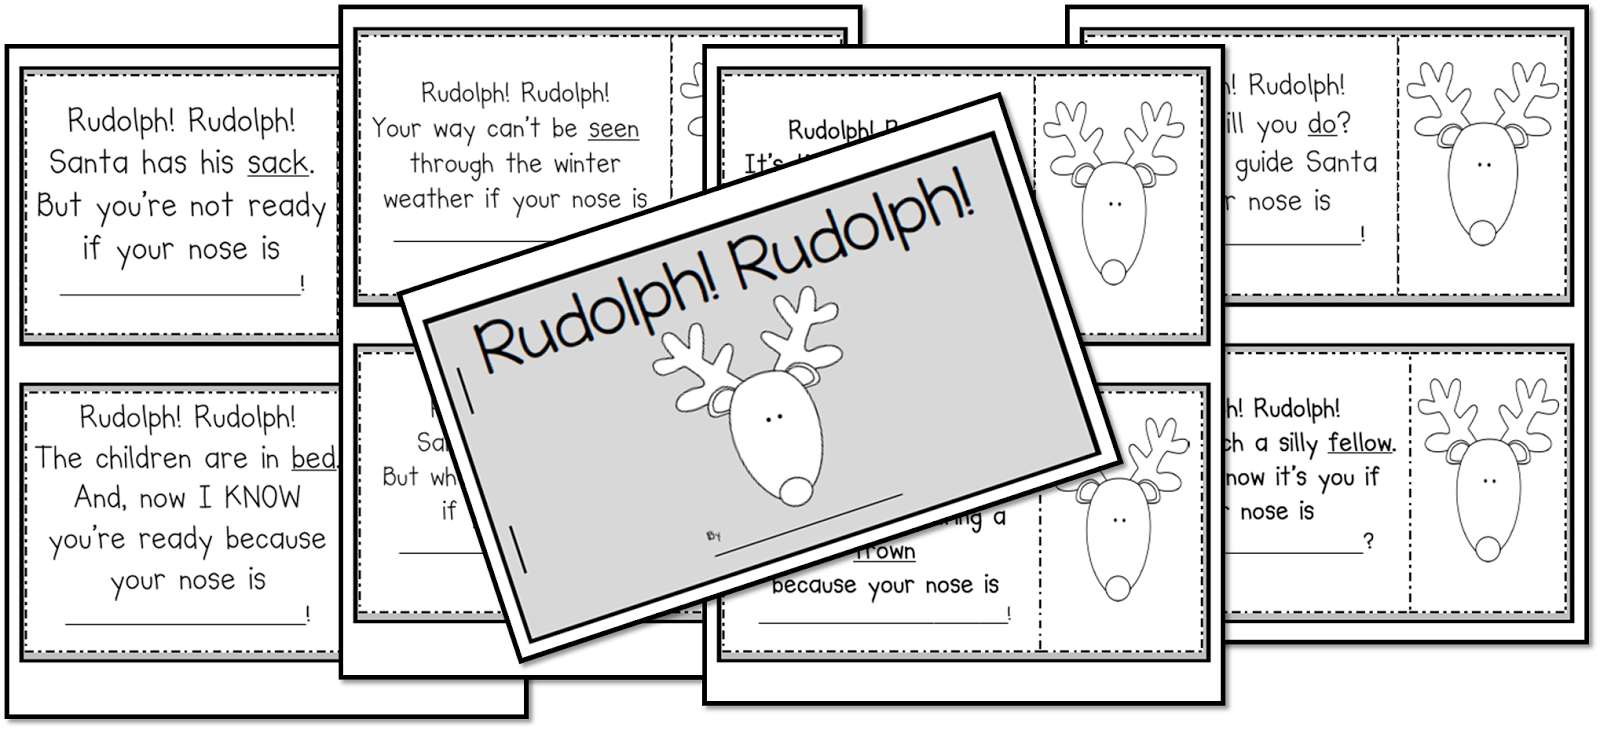 http://www.teacherspayteachers.com/Product/Rudolph-Rudolph-Rhyming-Book-459664